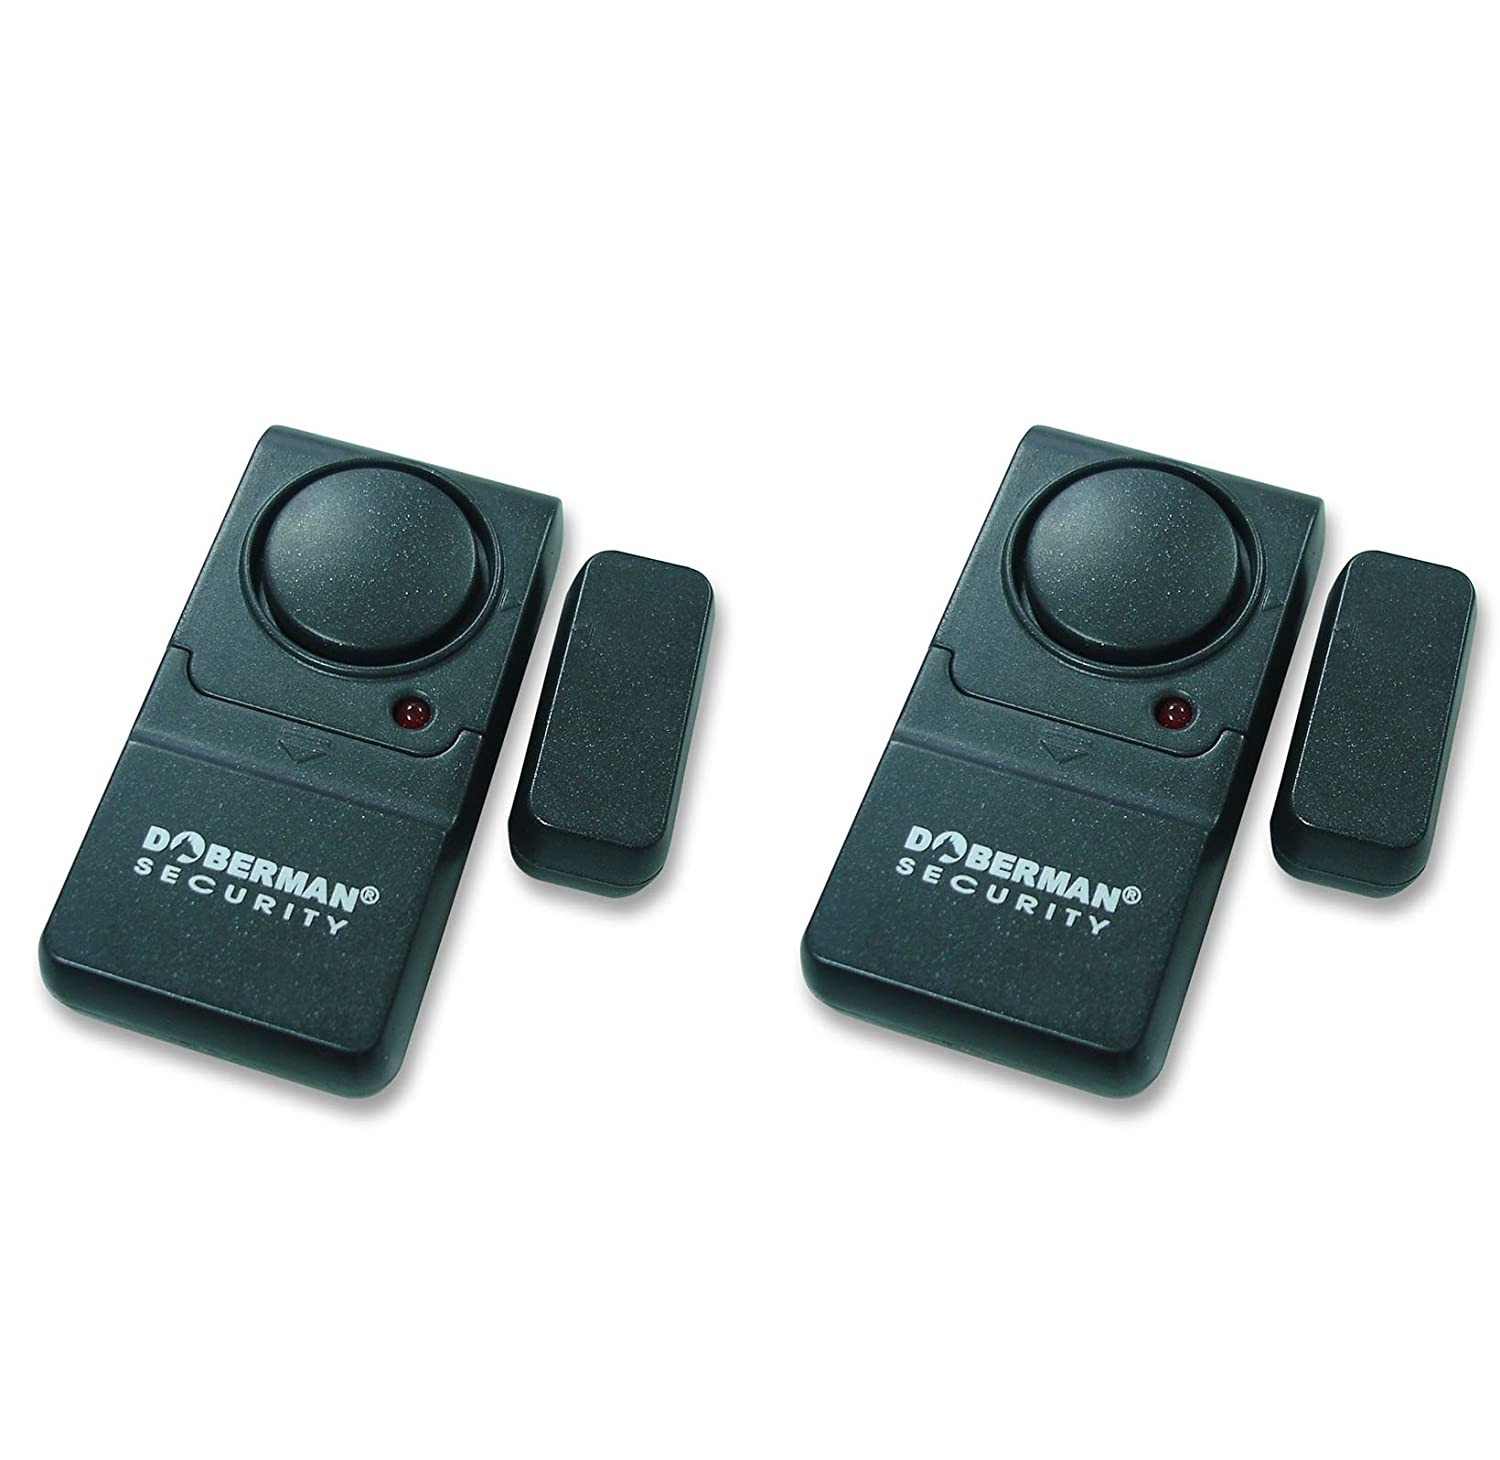 Door And Window Sensors Simple Cheap Yet Highly Effective Infrared Remote Control Security This Sensor Is An Ideal Option For Homeowners Who Would Like A Specific Set Of In Their